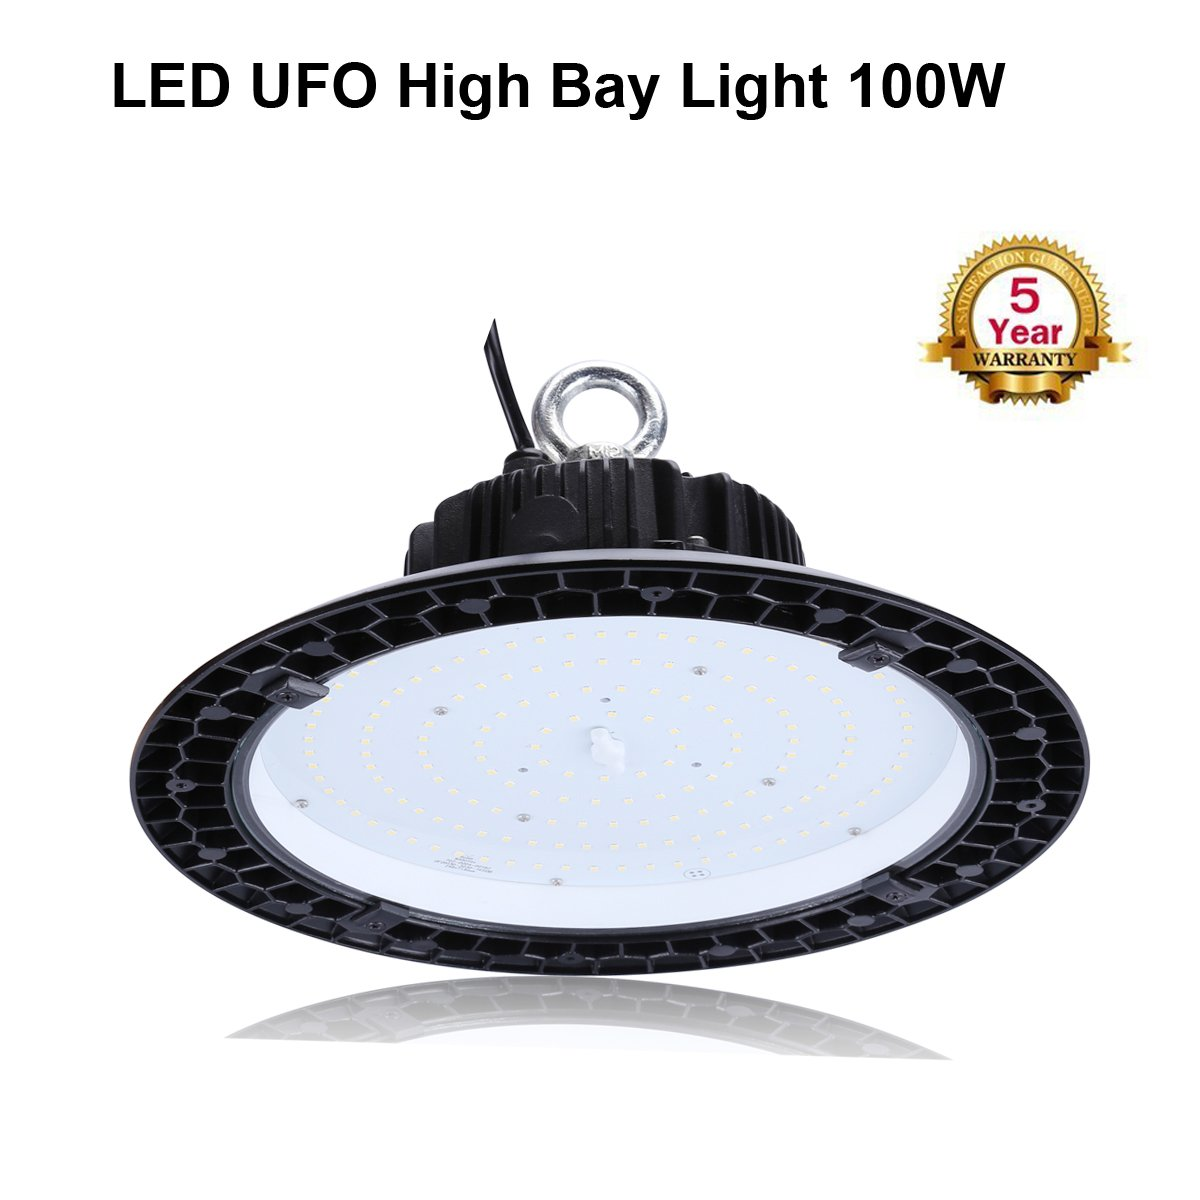 UFO LED High Bay Light,100W (400W HID/HPS Replacement) AC 100-277V,13000LM,5000K Bright White, IP65 Waterproof Commercial Grade Area Warehouse Workshop Hanging Lighting Fixtures by FALANFA